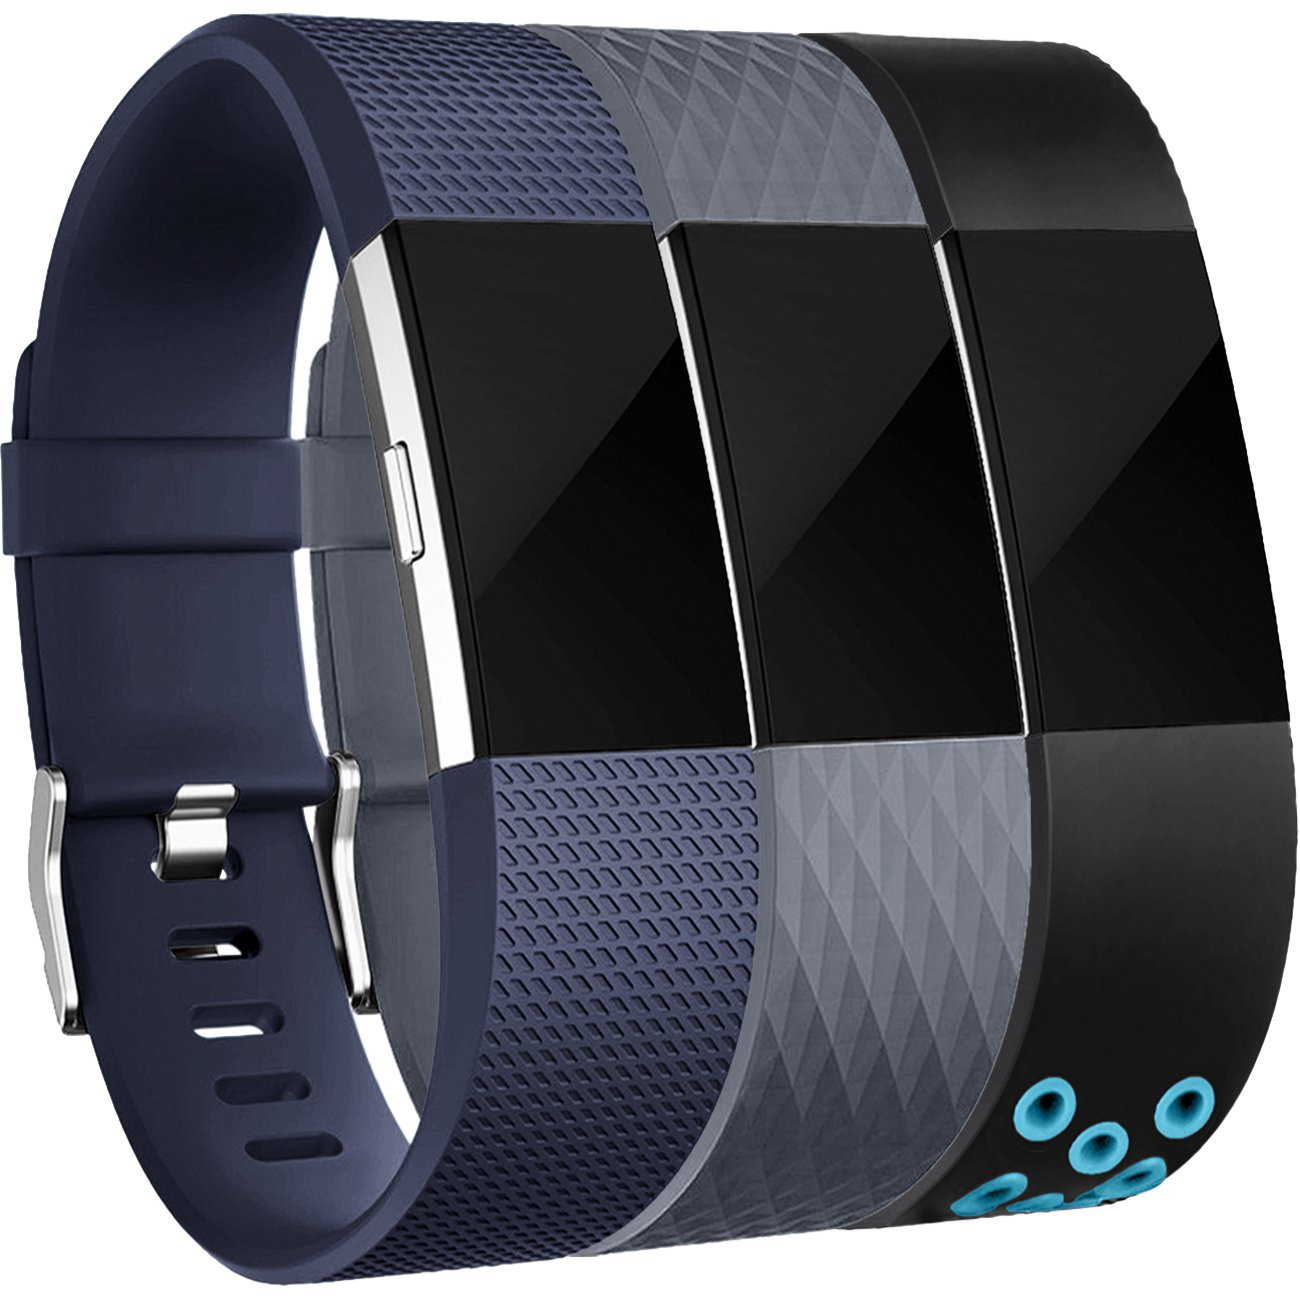 For Fitbit Charge 2バンド、Wepro交換用バンドストラップWristbands for Fitbit Charge 2、バックル、S、L、10異なる色 Small|Black/Gray/Black Blue Black/Gray/Black Blue Small B0748FWHQY